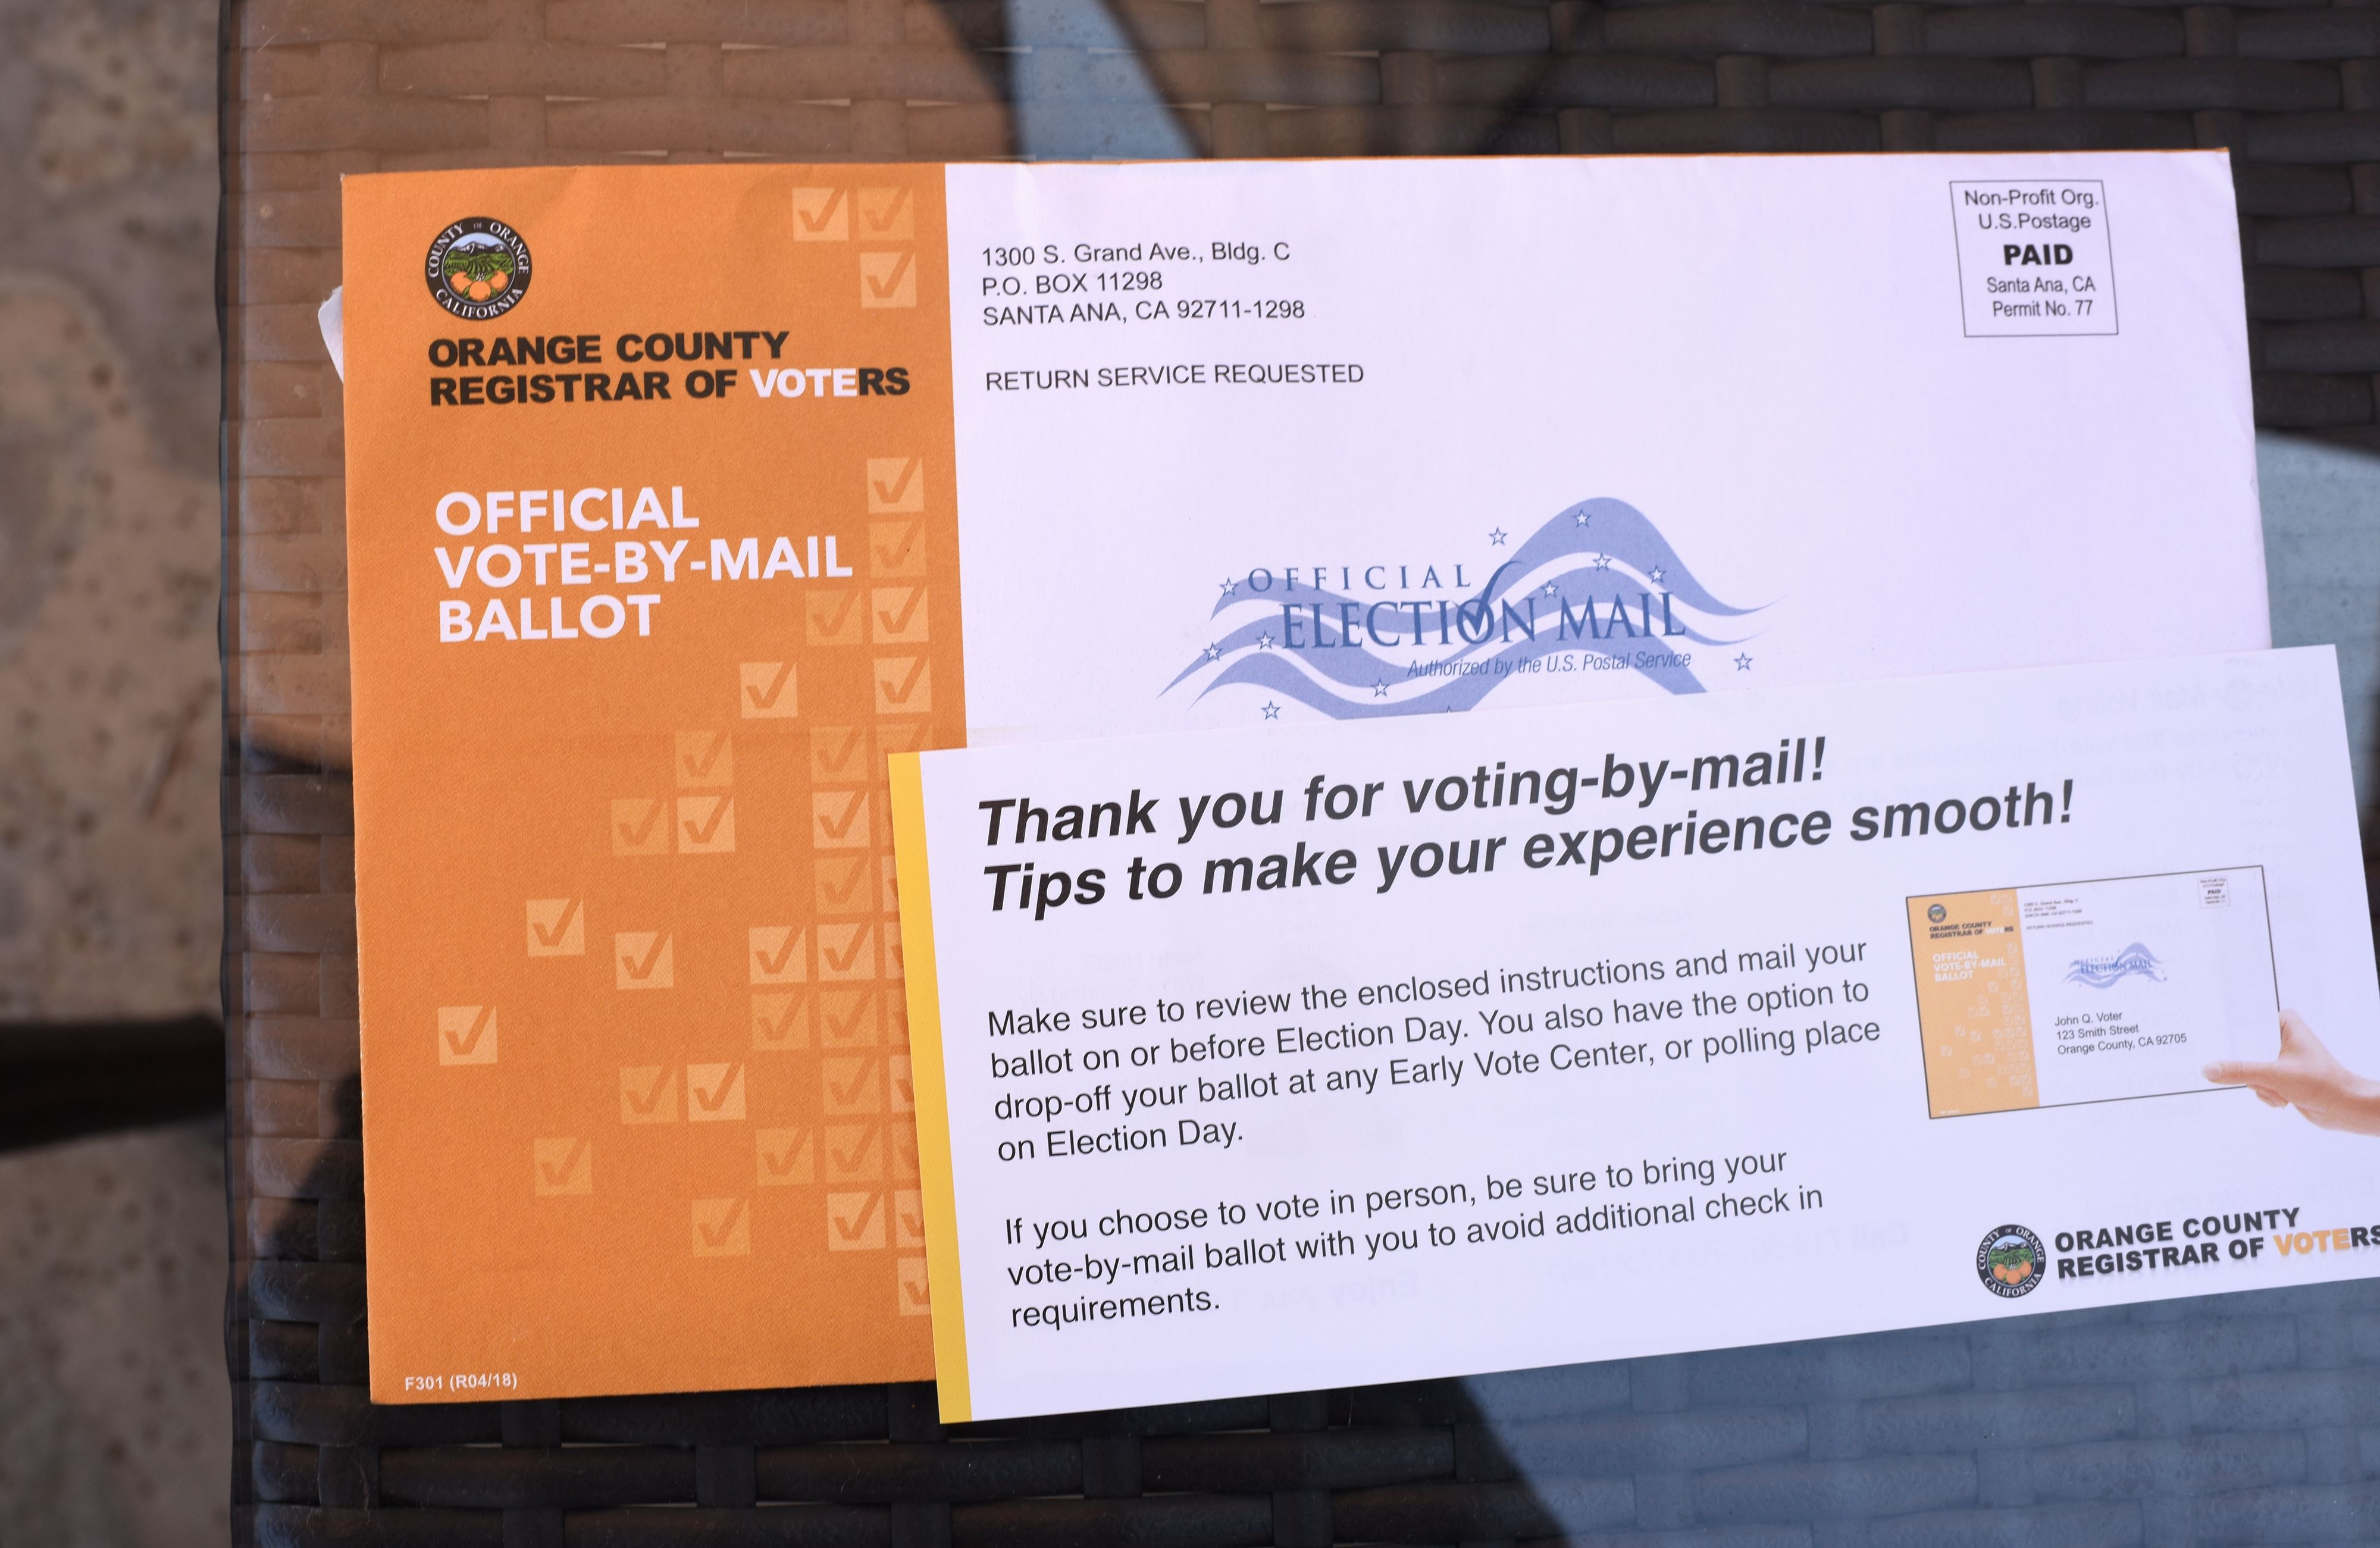 A mail-in ballot for the midterm elections is displayed in upscale Laguna Niguel in southern California's Orange County, October 14, 2018. - Amoukhteh, a registered Republican, is supporting a Democratic candidate for congress in her district. She says her turn away from the Republican Party was motivated by her distaste for what she sees as US President Donald Trump's misogyny and racism. (Photo by Robyn Beck / AFP) (Photo credit should read ROBYN BECK/AFP via Getty Images)